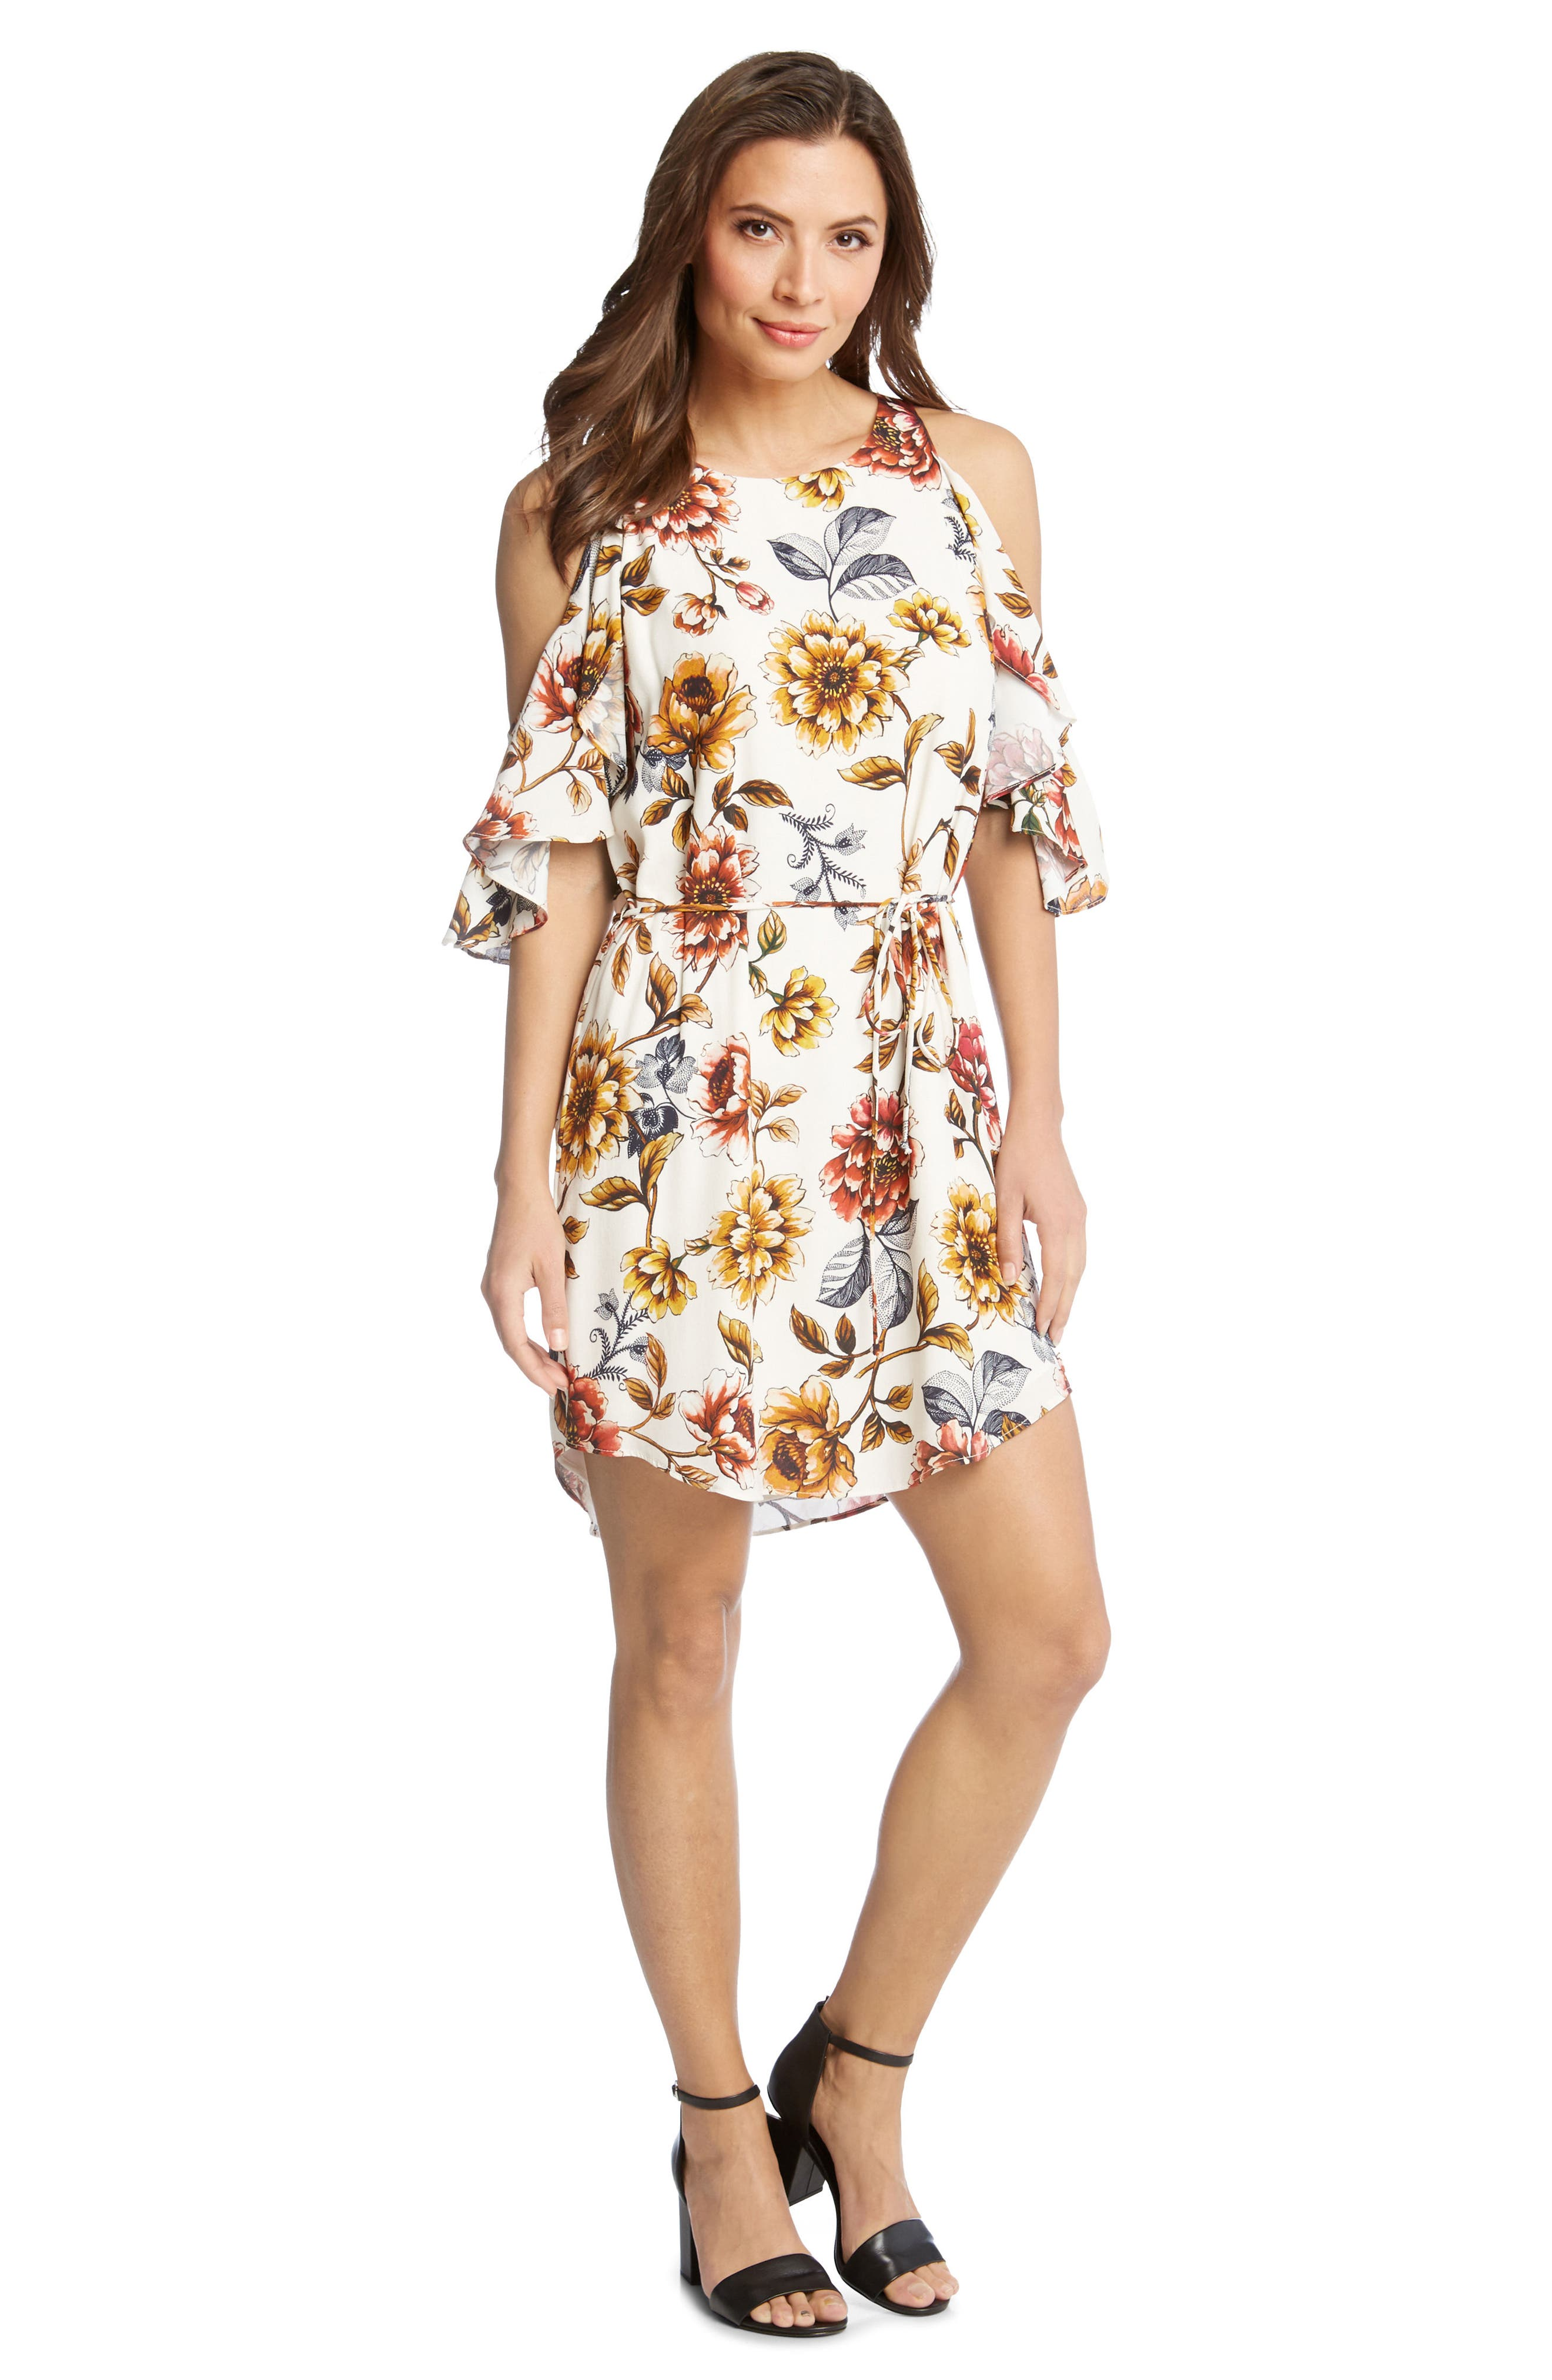 Kane Kane Cold Shoulder Floral Dress,                             Alternate thumbnail 3, color,                             PRINT